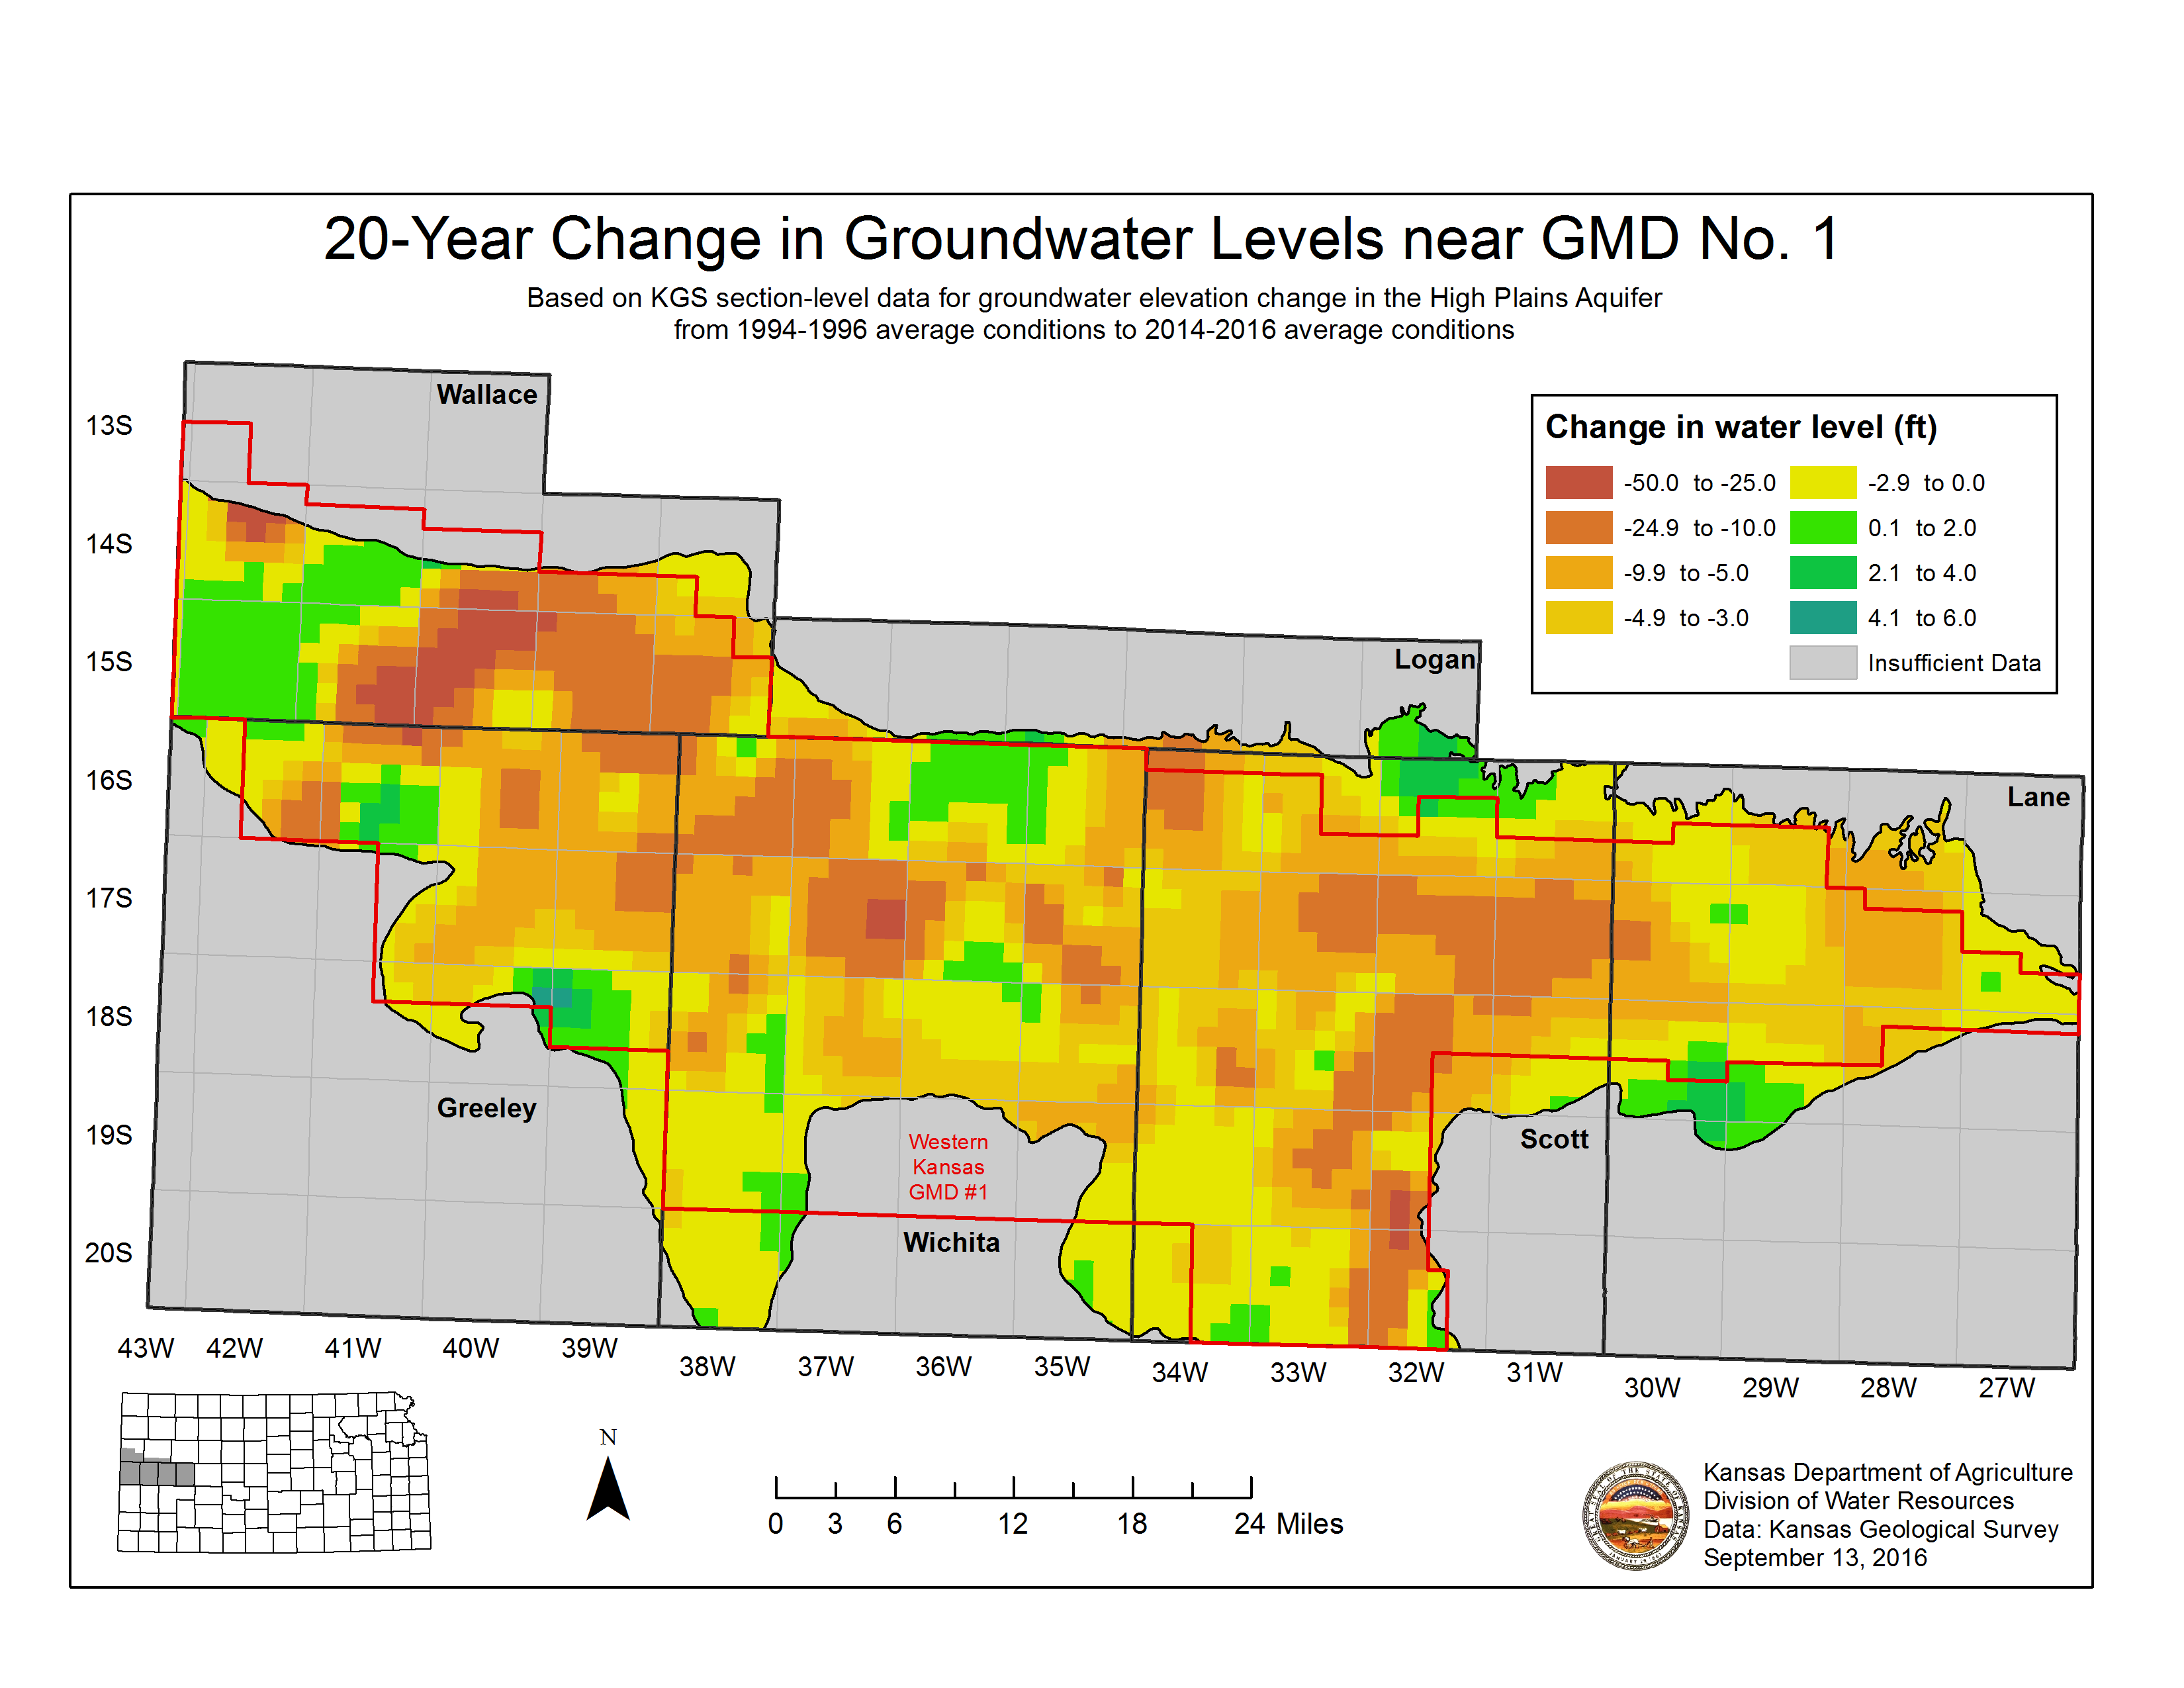 Groundwater level change in the High Plains aquifer in Western Kansas